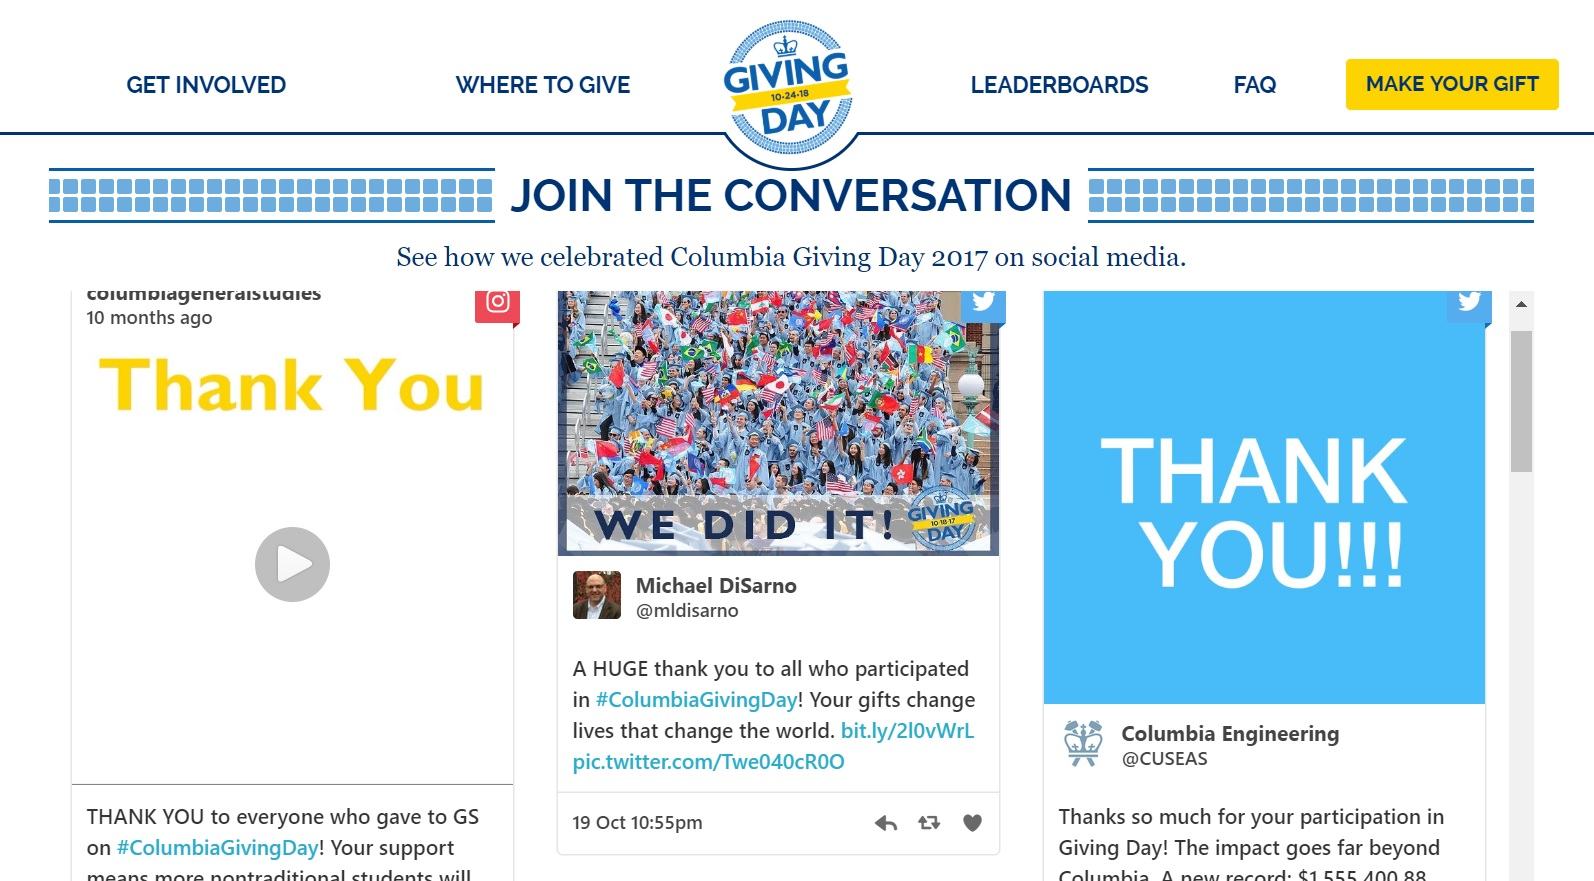 Columbia University 'Giving Day' social media